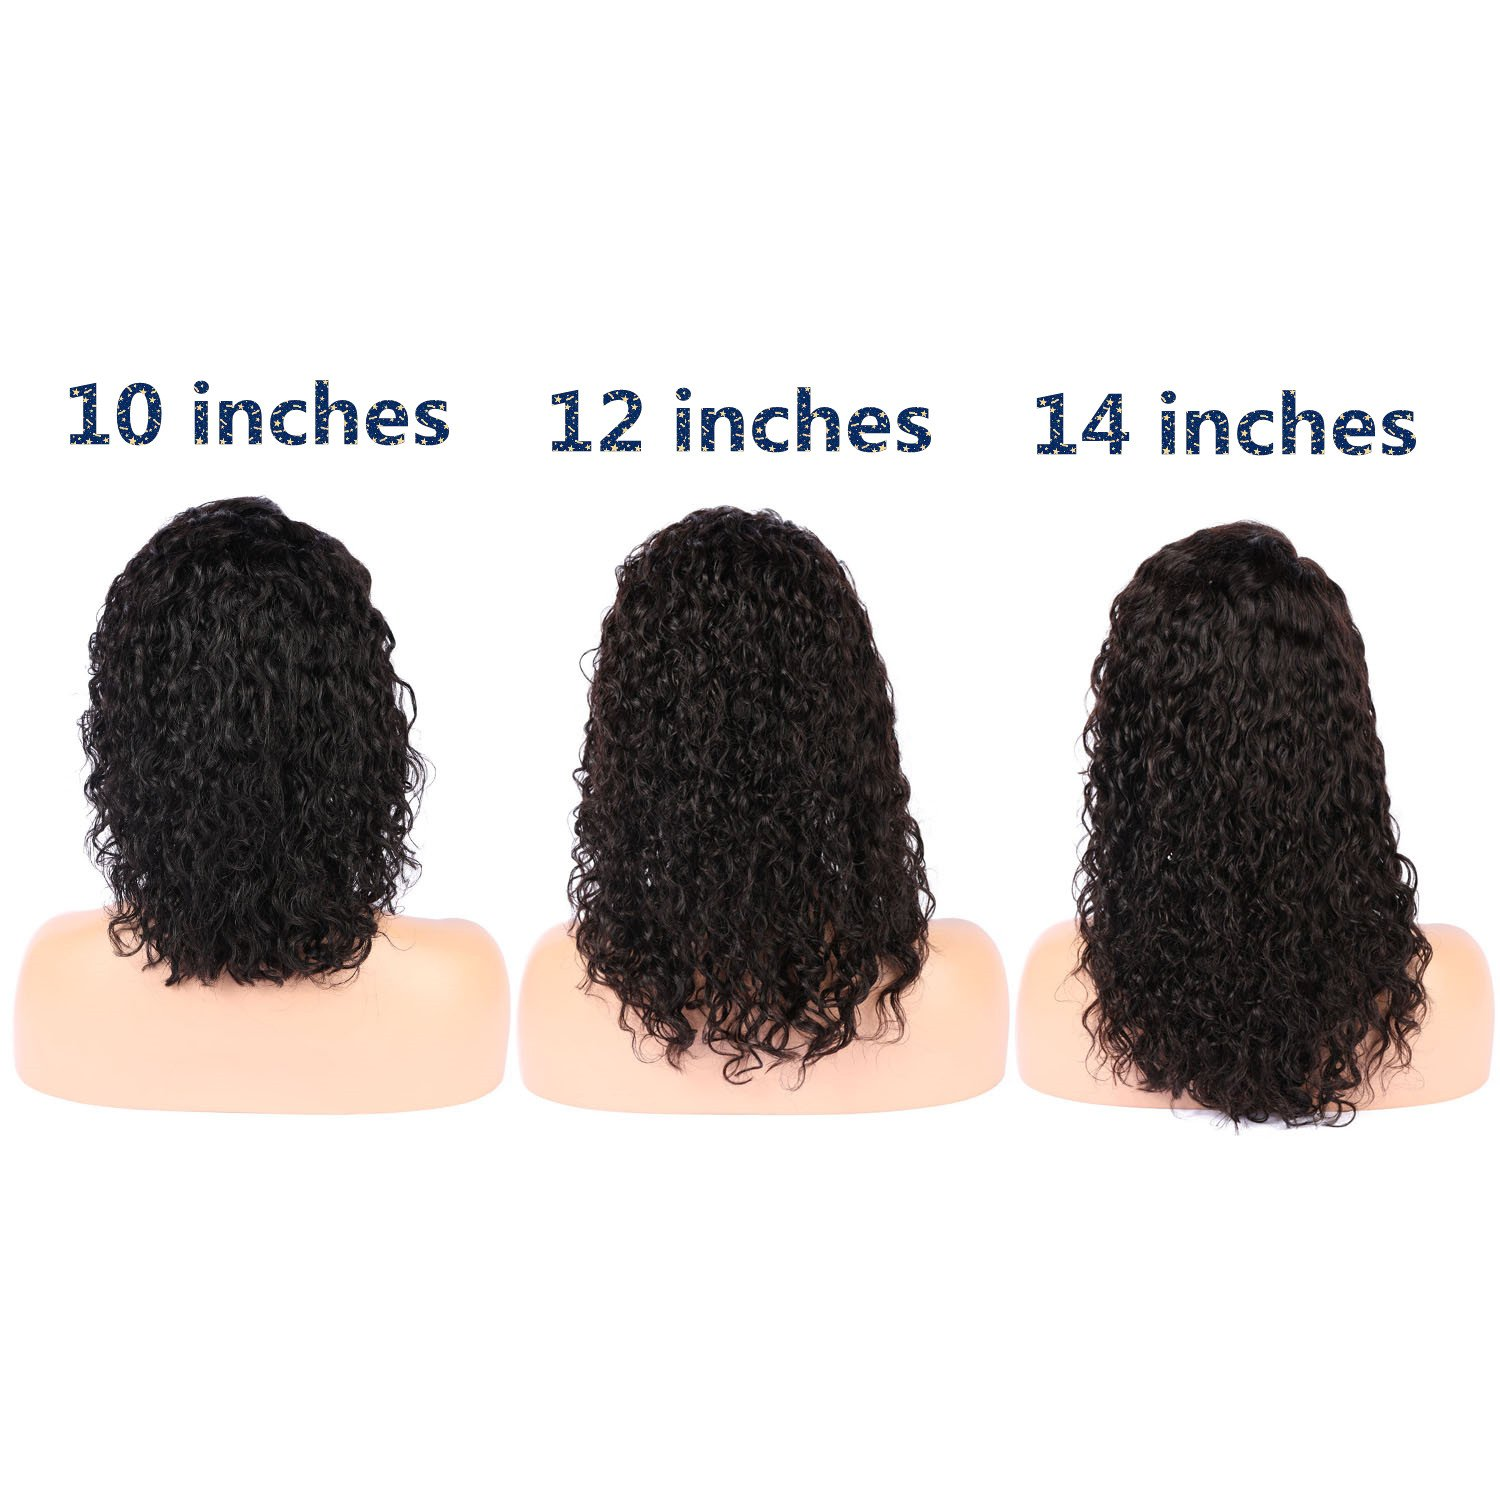 LIAZAHAIR Short Deep Curly Human Hair Lace Front Wigs With Baby Hair Pre-Plucked Natural Hairline Brazilian Remy Bob Wig For Ladies (10 inches) by LIAZAHAIR (Image #4)